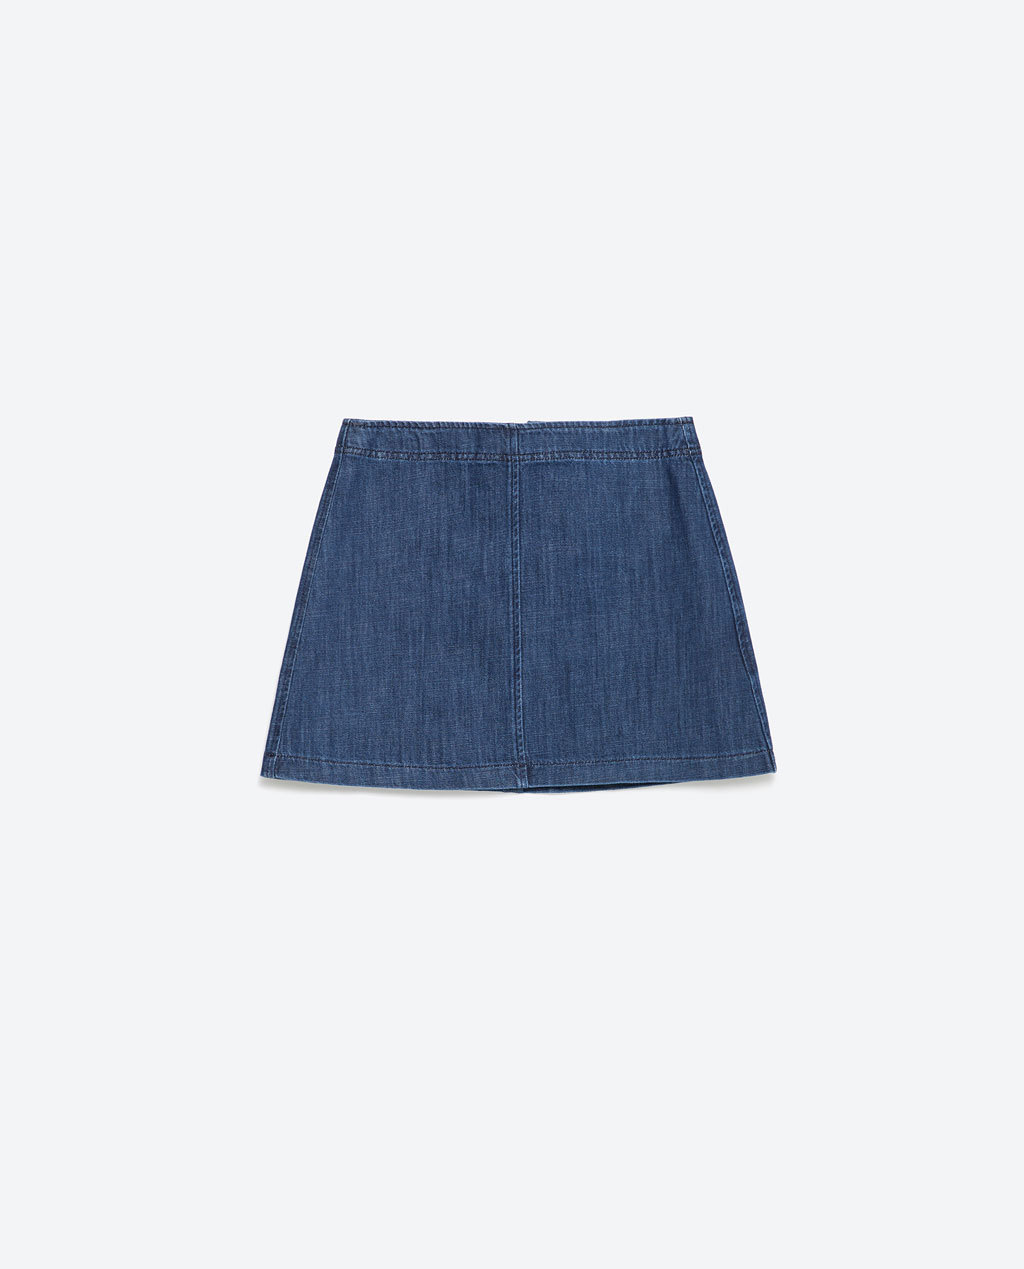 Denim Miniskirt - length: mini; pattern: plain; fit: loose/voluminous; waist: mid/regular rise; predominant colour: denim; occasions: casual; style: mini skirt; fibres: cotton - 100%; texture group: denim; pattern type: fabric; season: a/w 2015; wardrobe: basic